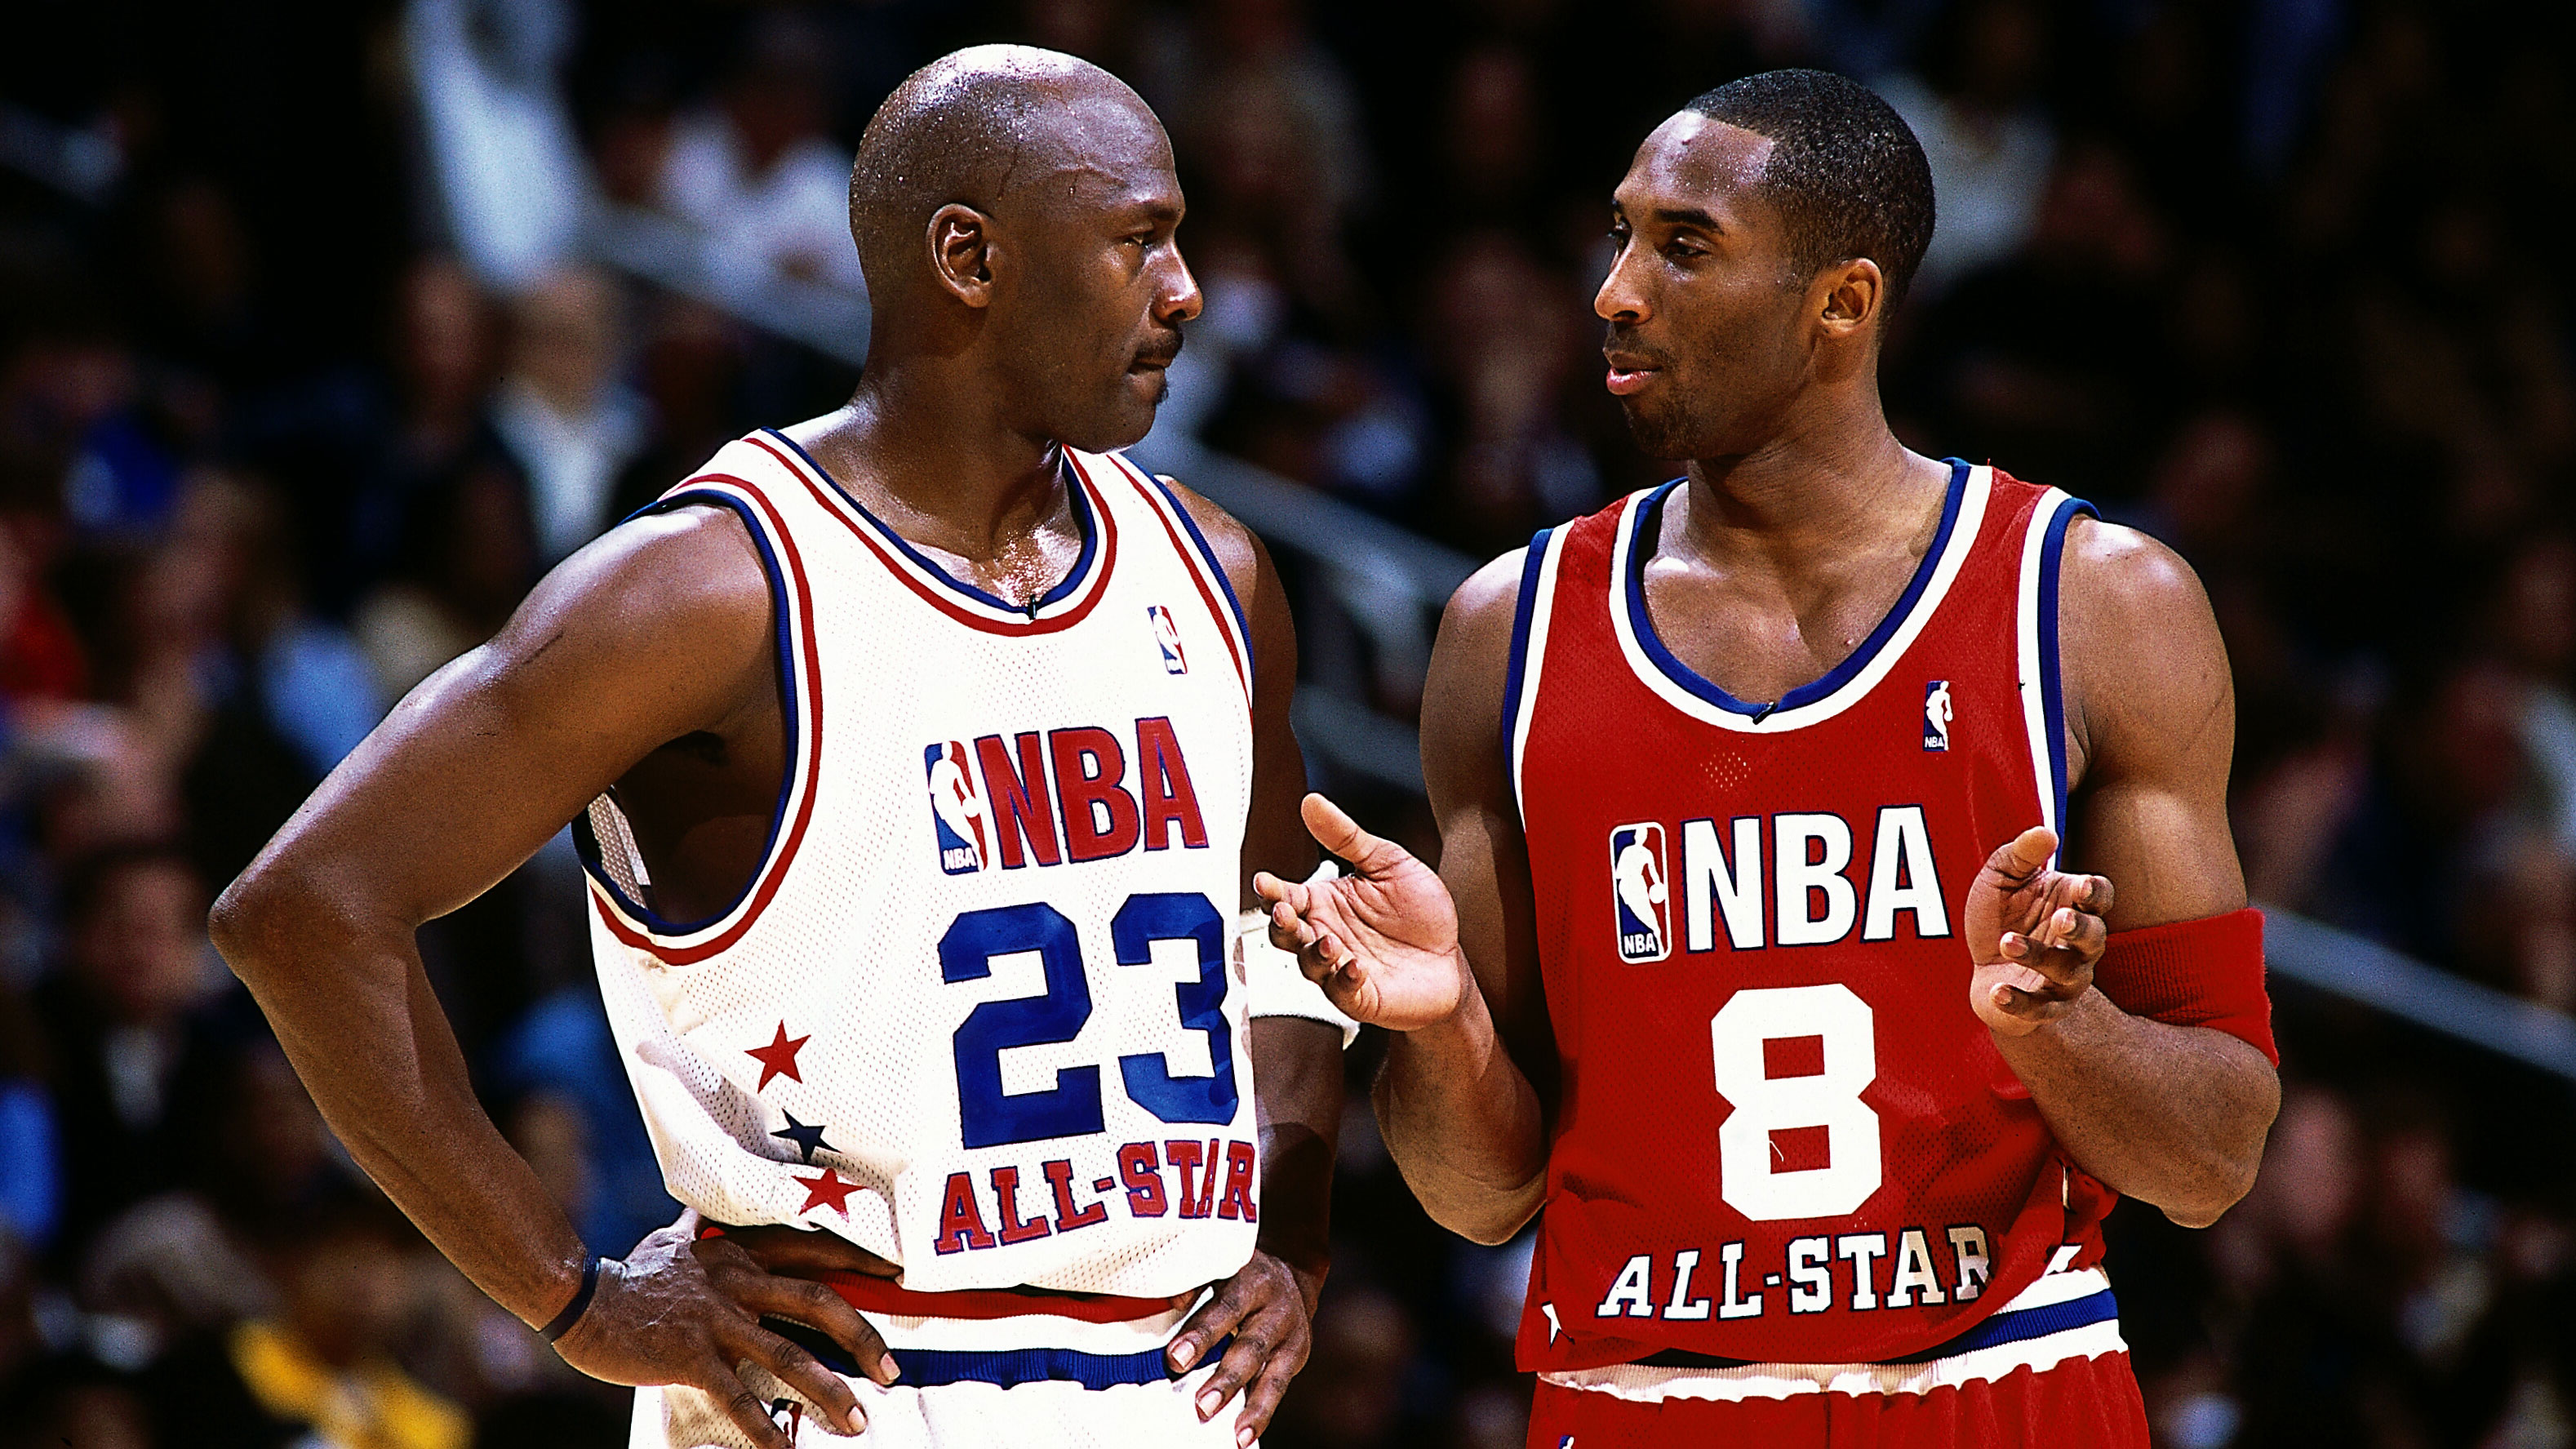 NBA All Star Game: Preview – BCS Logic